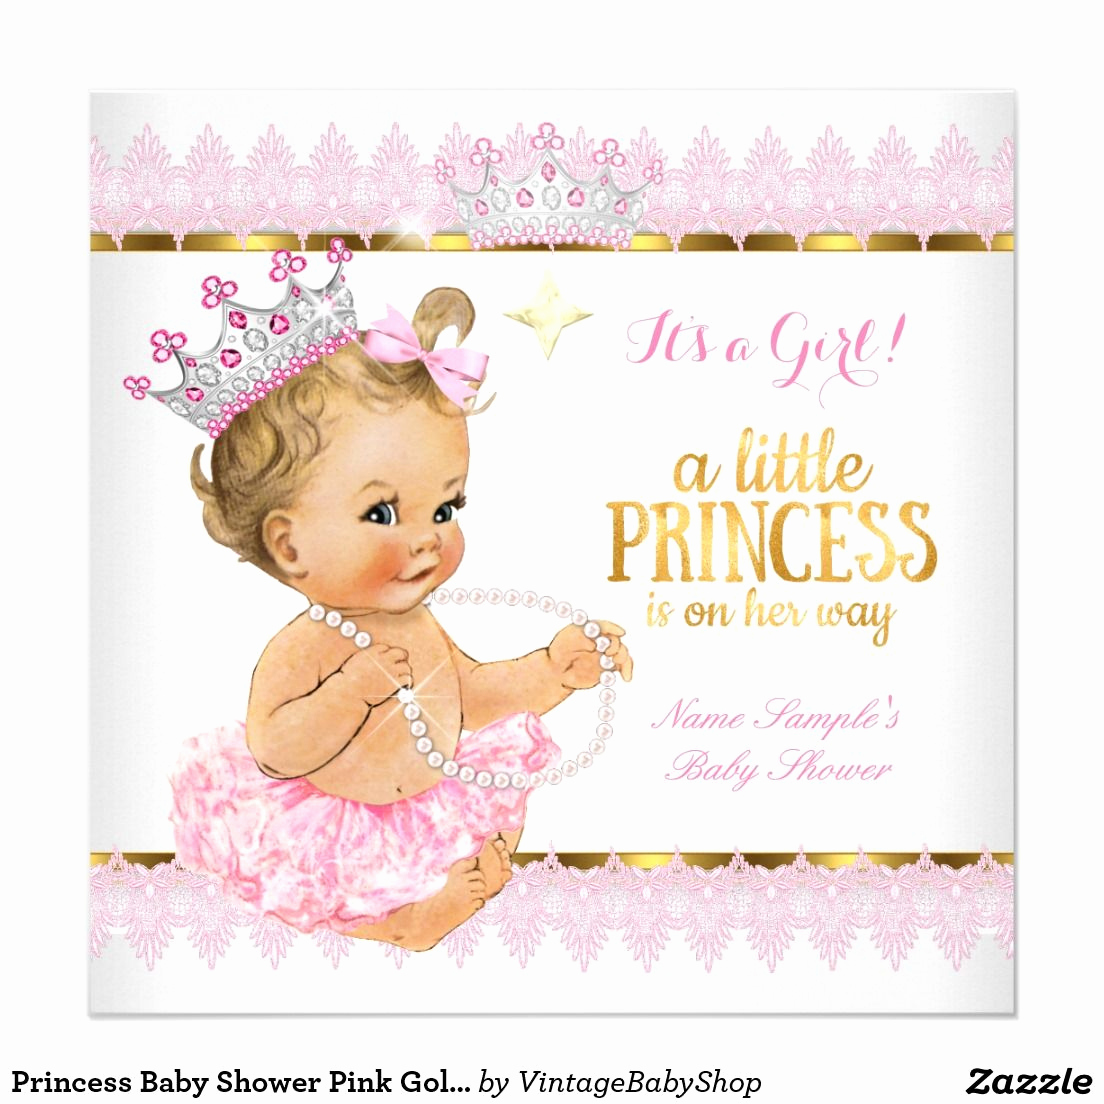 Princess Baby Shower Invitations Awesome Princess Baby Shower Pink Gold Blonde Girl Card